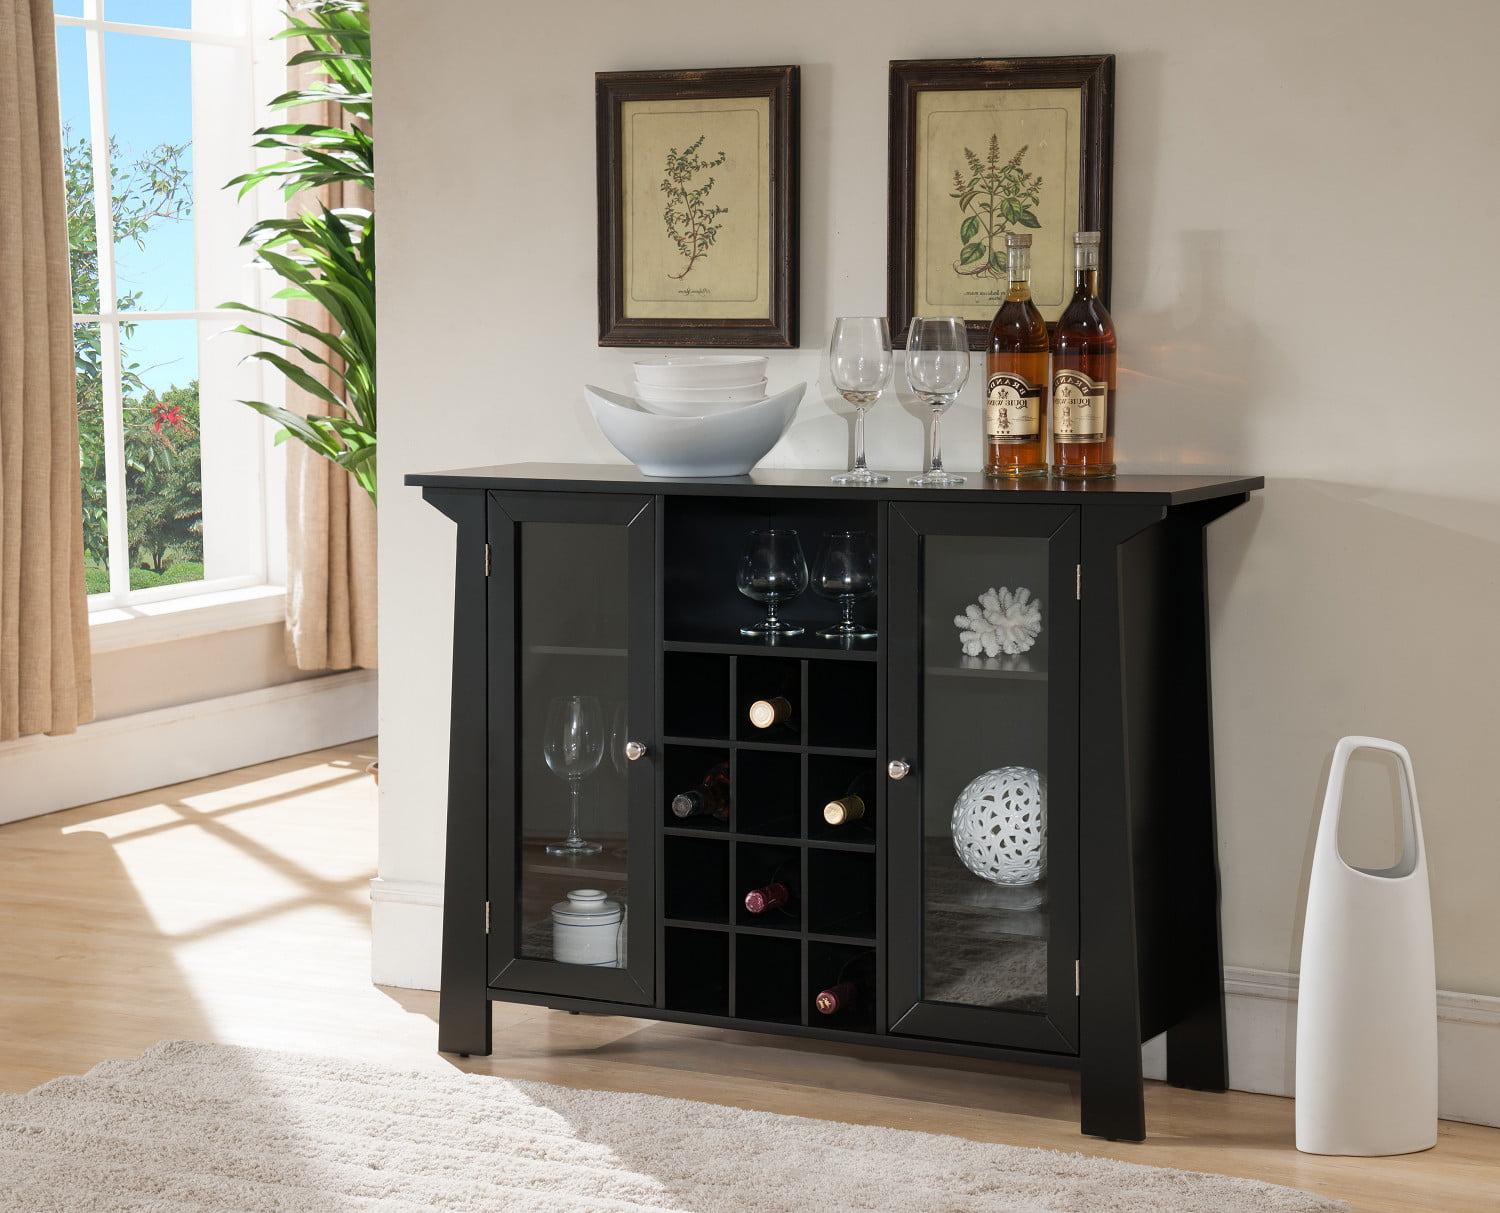 Black Wood Contemporary Wine Rack Sideboard Buffet Display Console Table With Glass Cabinet Storage Doors & Shelf by